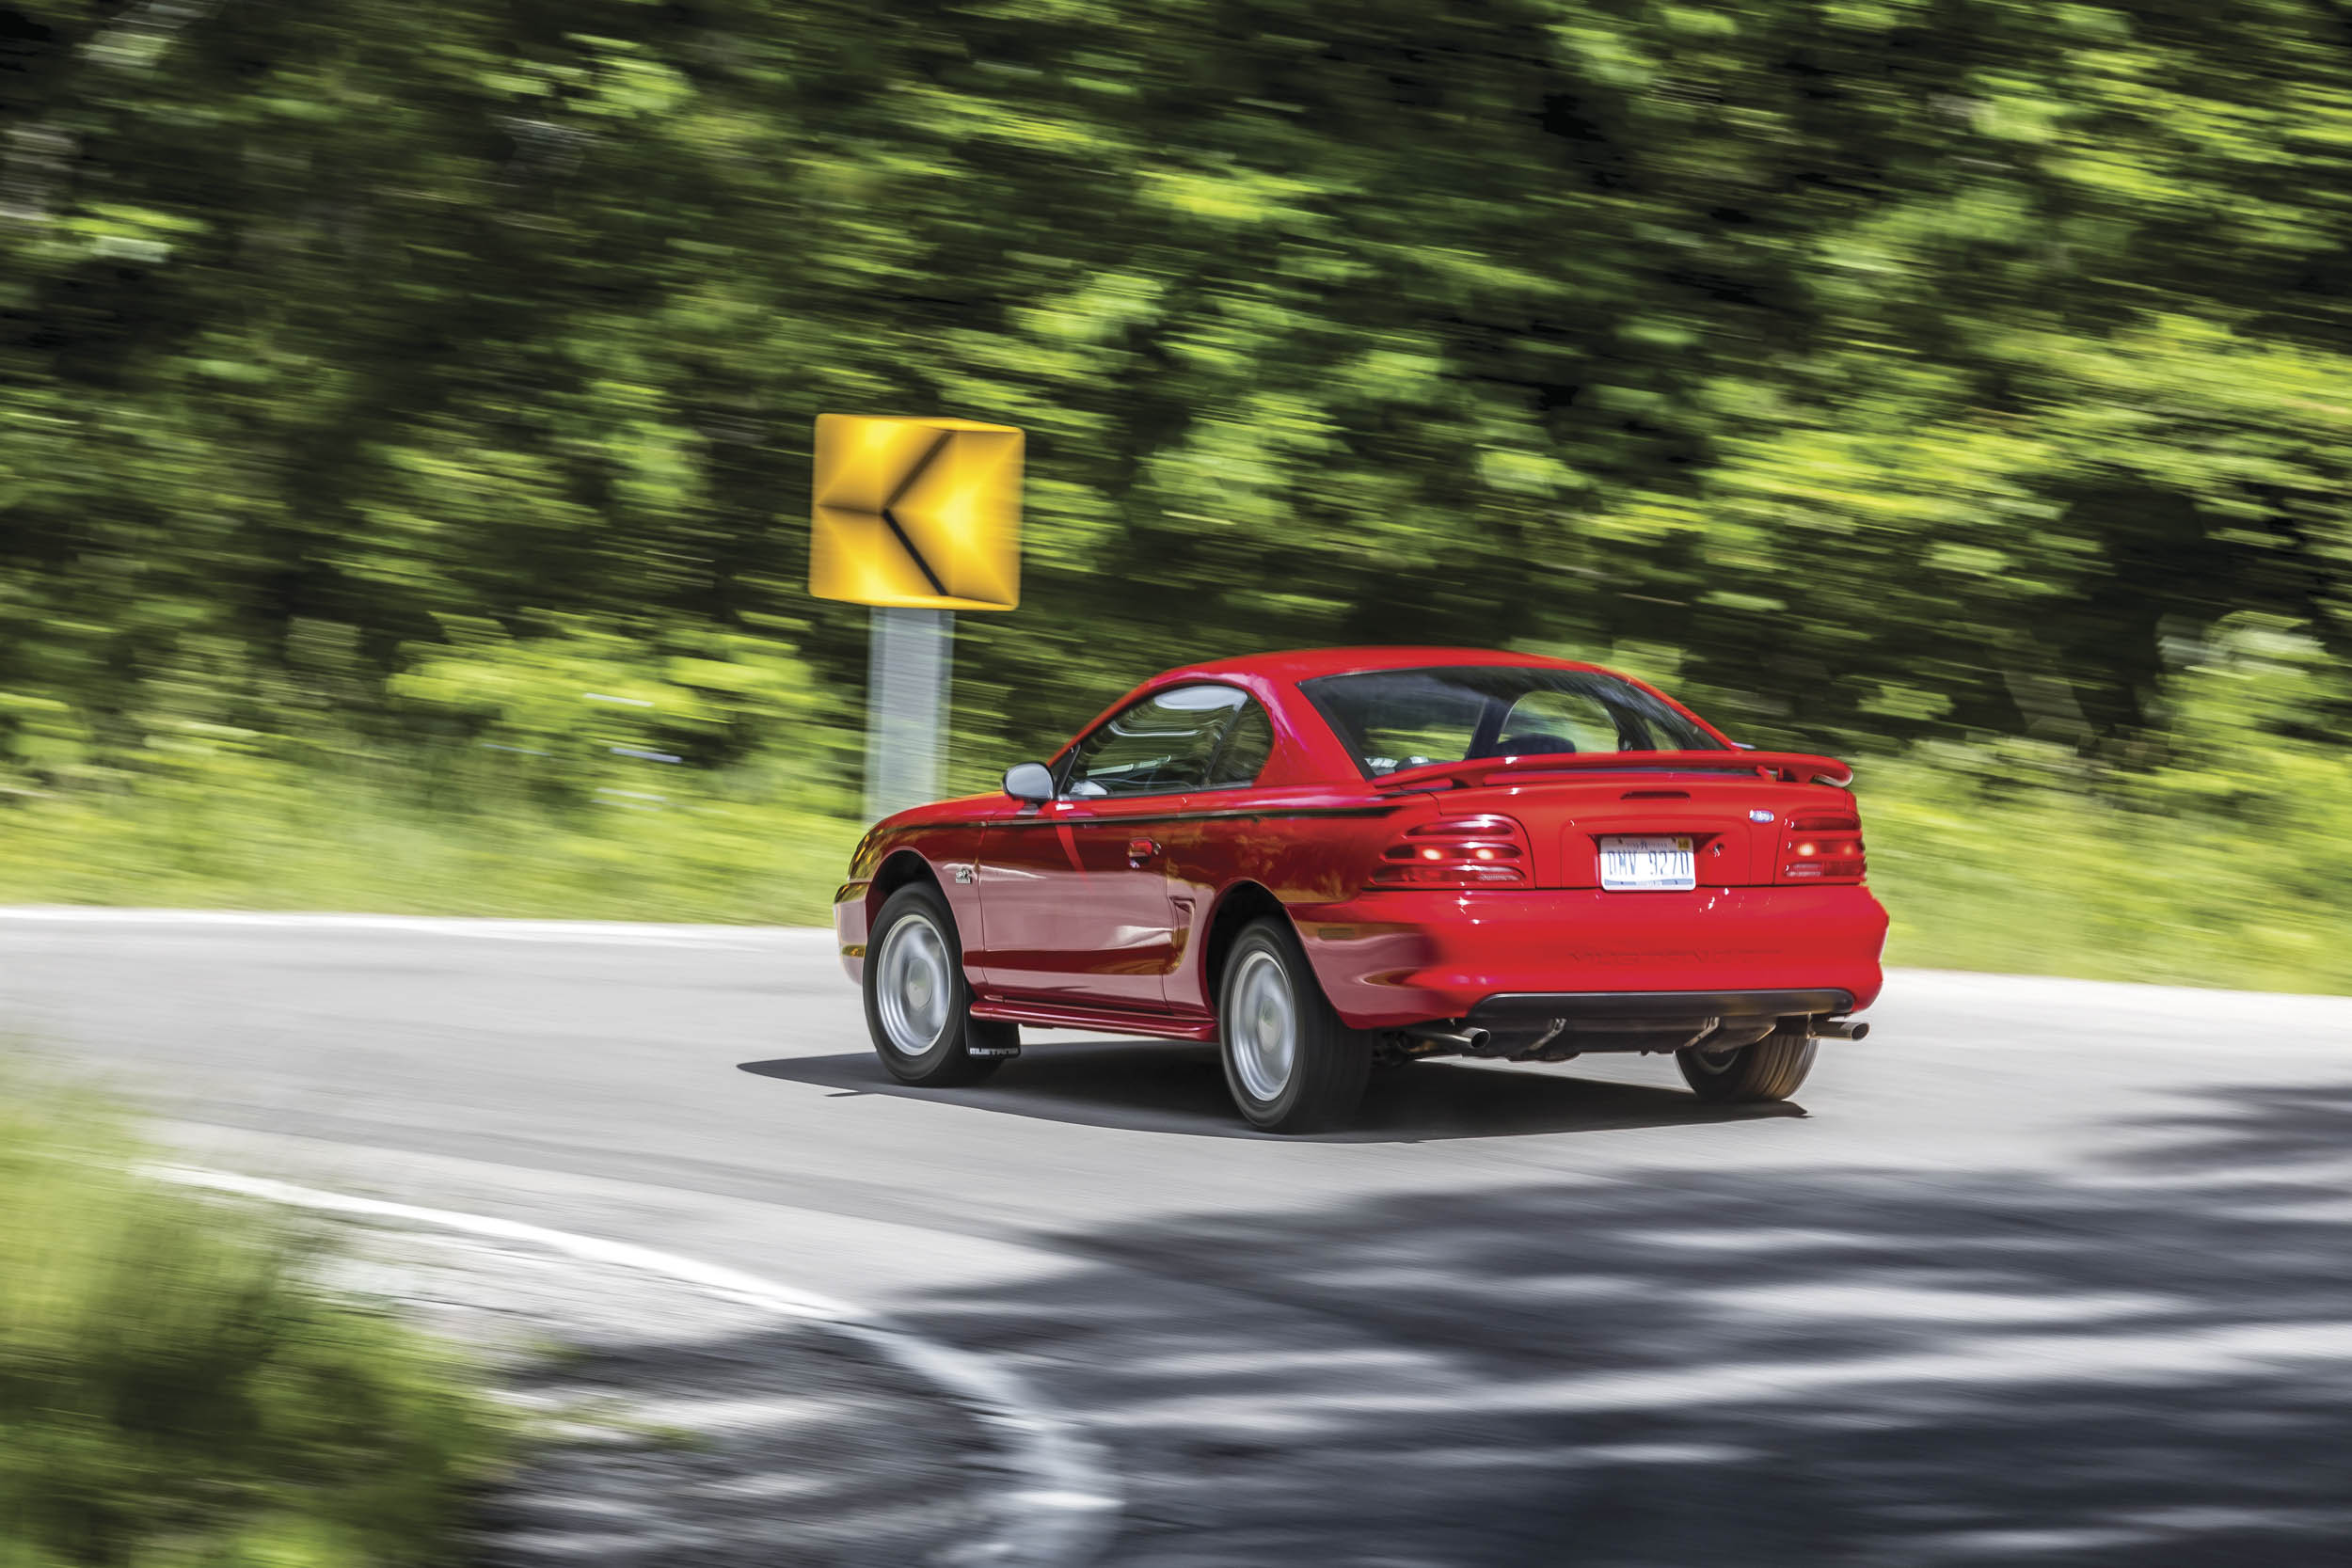 The fourthgeneration Mustang is blessed with a stiff structure and suspension geometry that resists body roll, and grip from the BFGoodrich tires is plentiful.